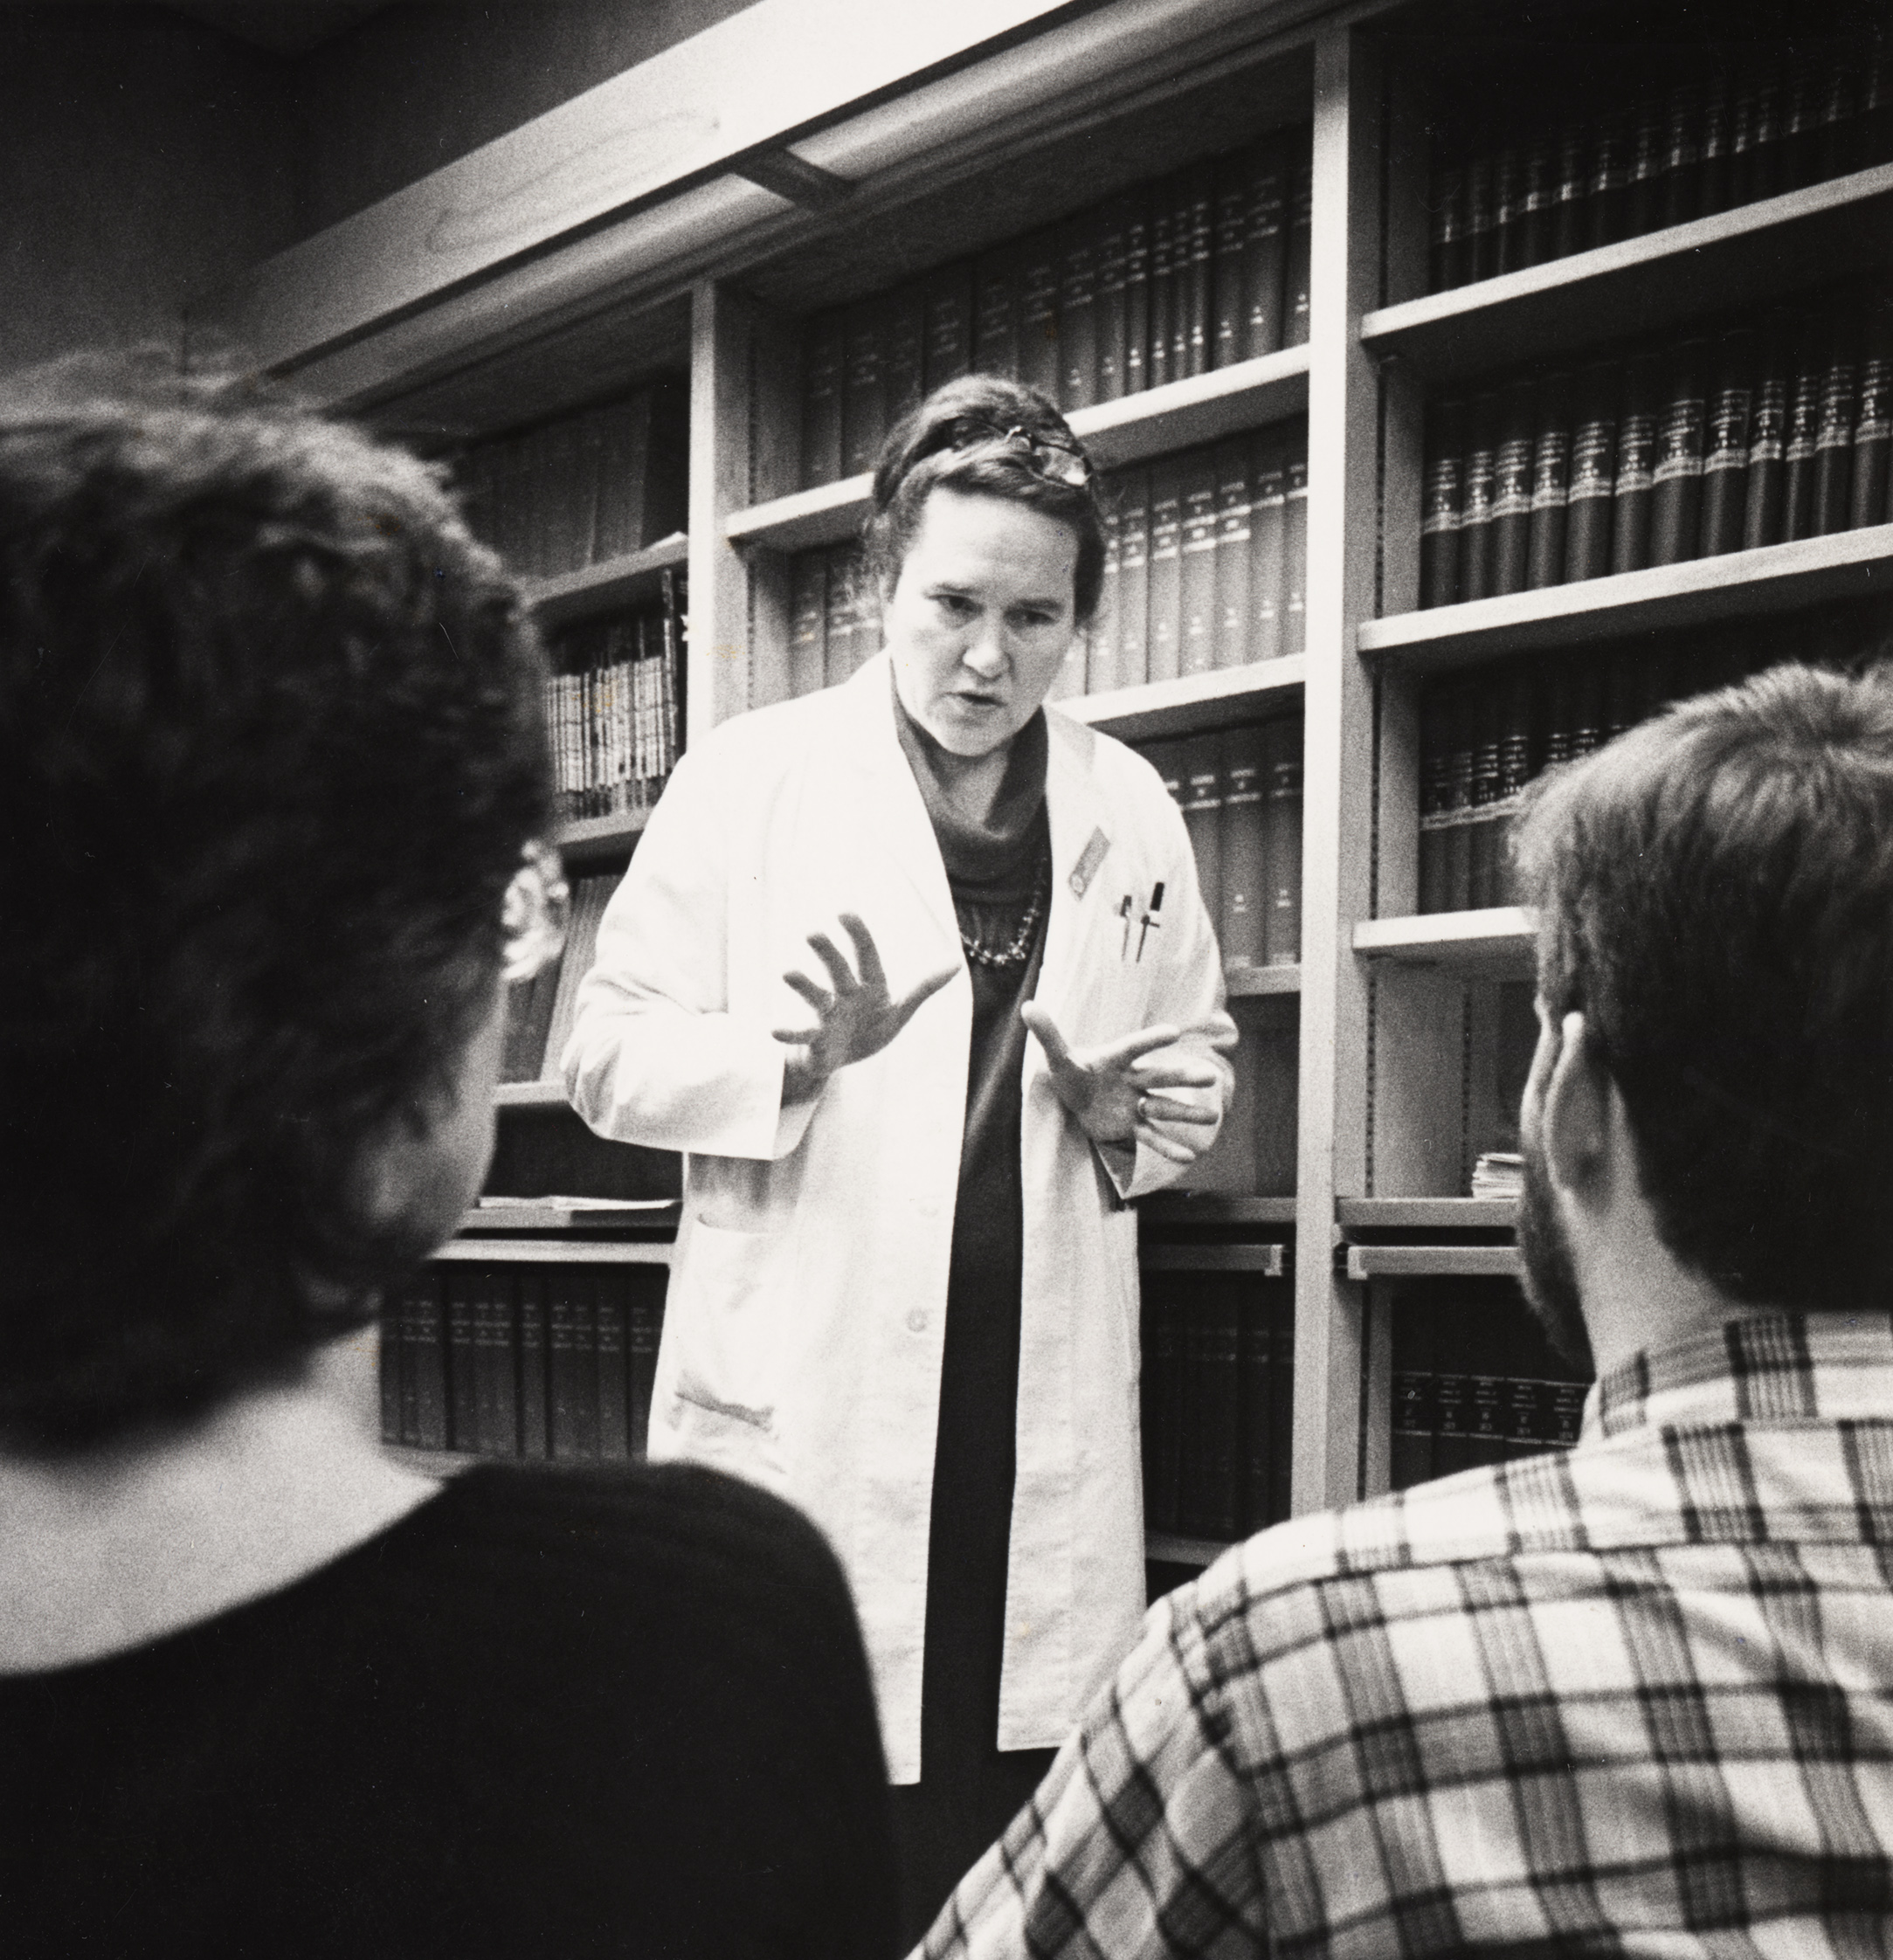 Dr. Storrs teaching students, circa 1980s, Historical Image Collection.